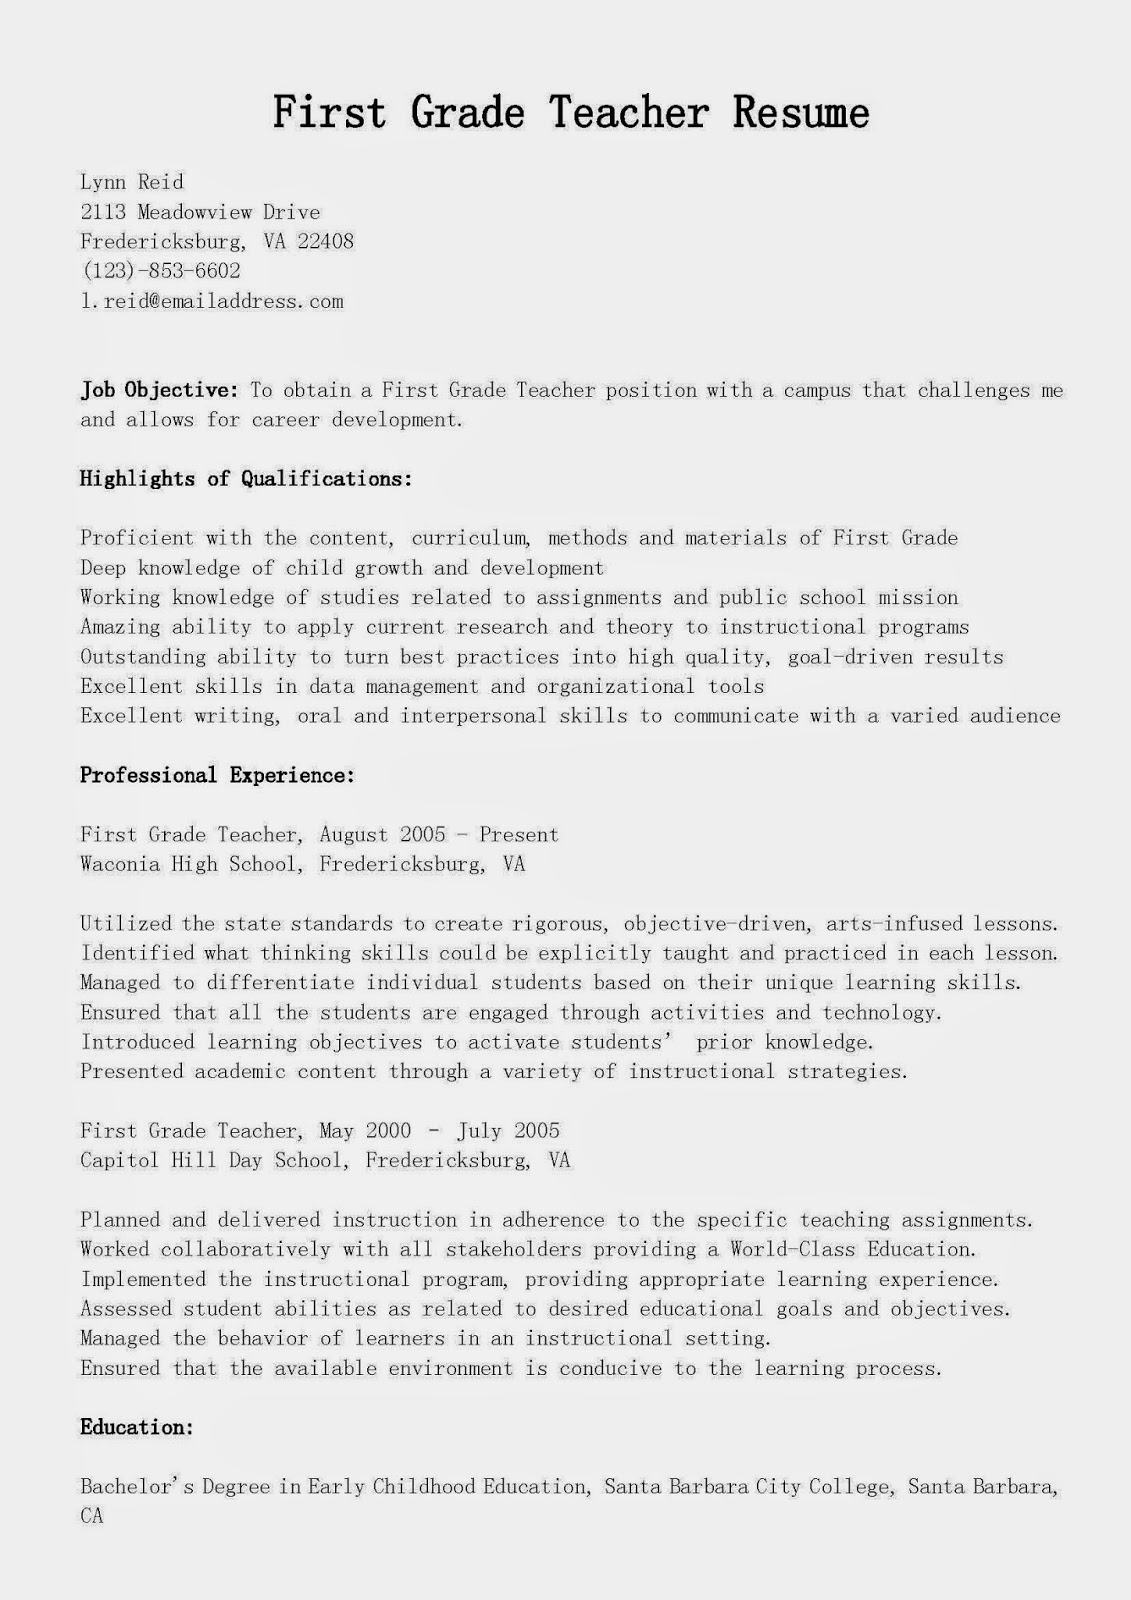 Resume preview during the job hunt can save you time  Pinterest